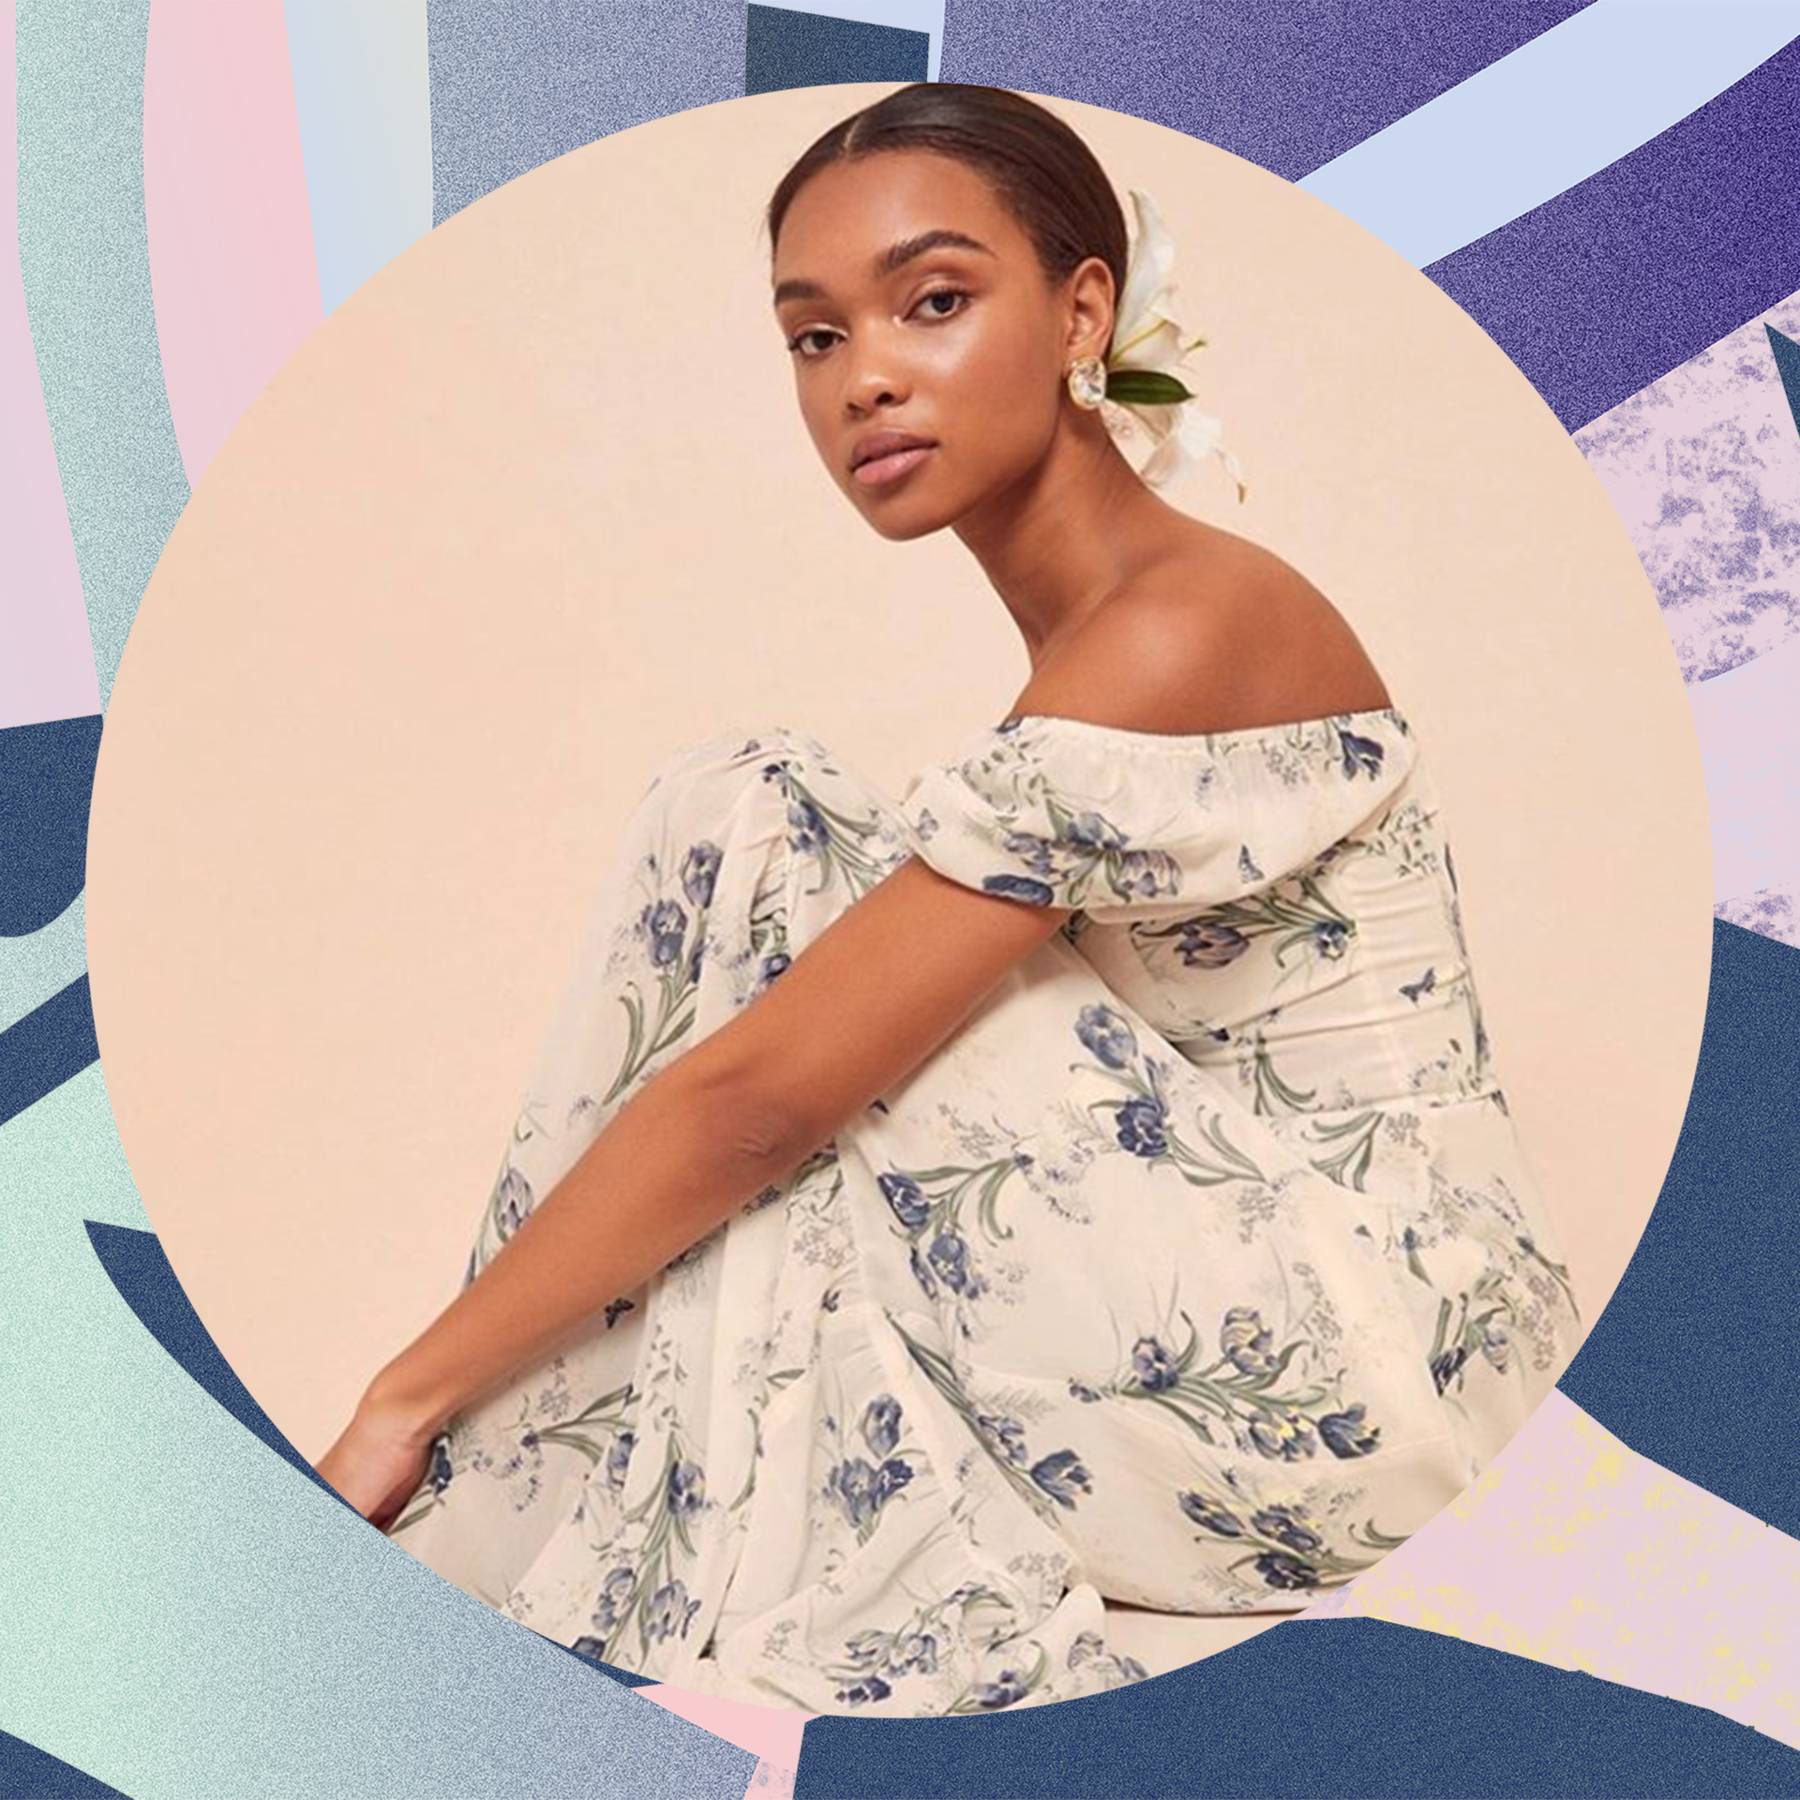 Reformation just dropped 7 new dress styles which are perfect for every wedding you attend this year